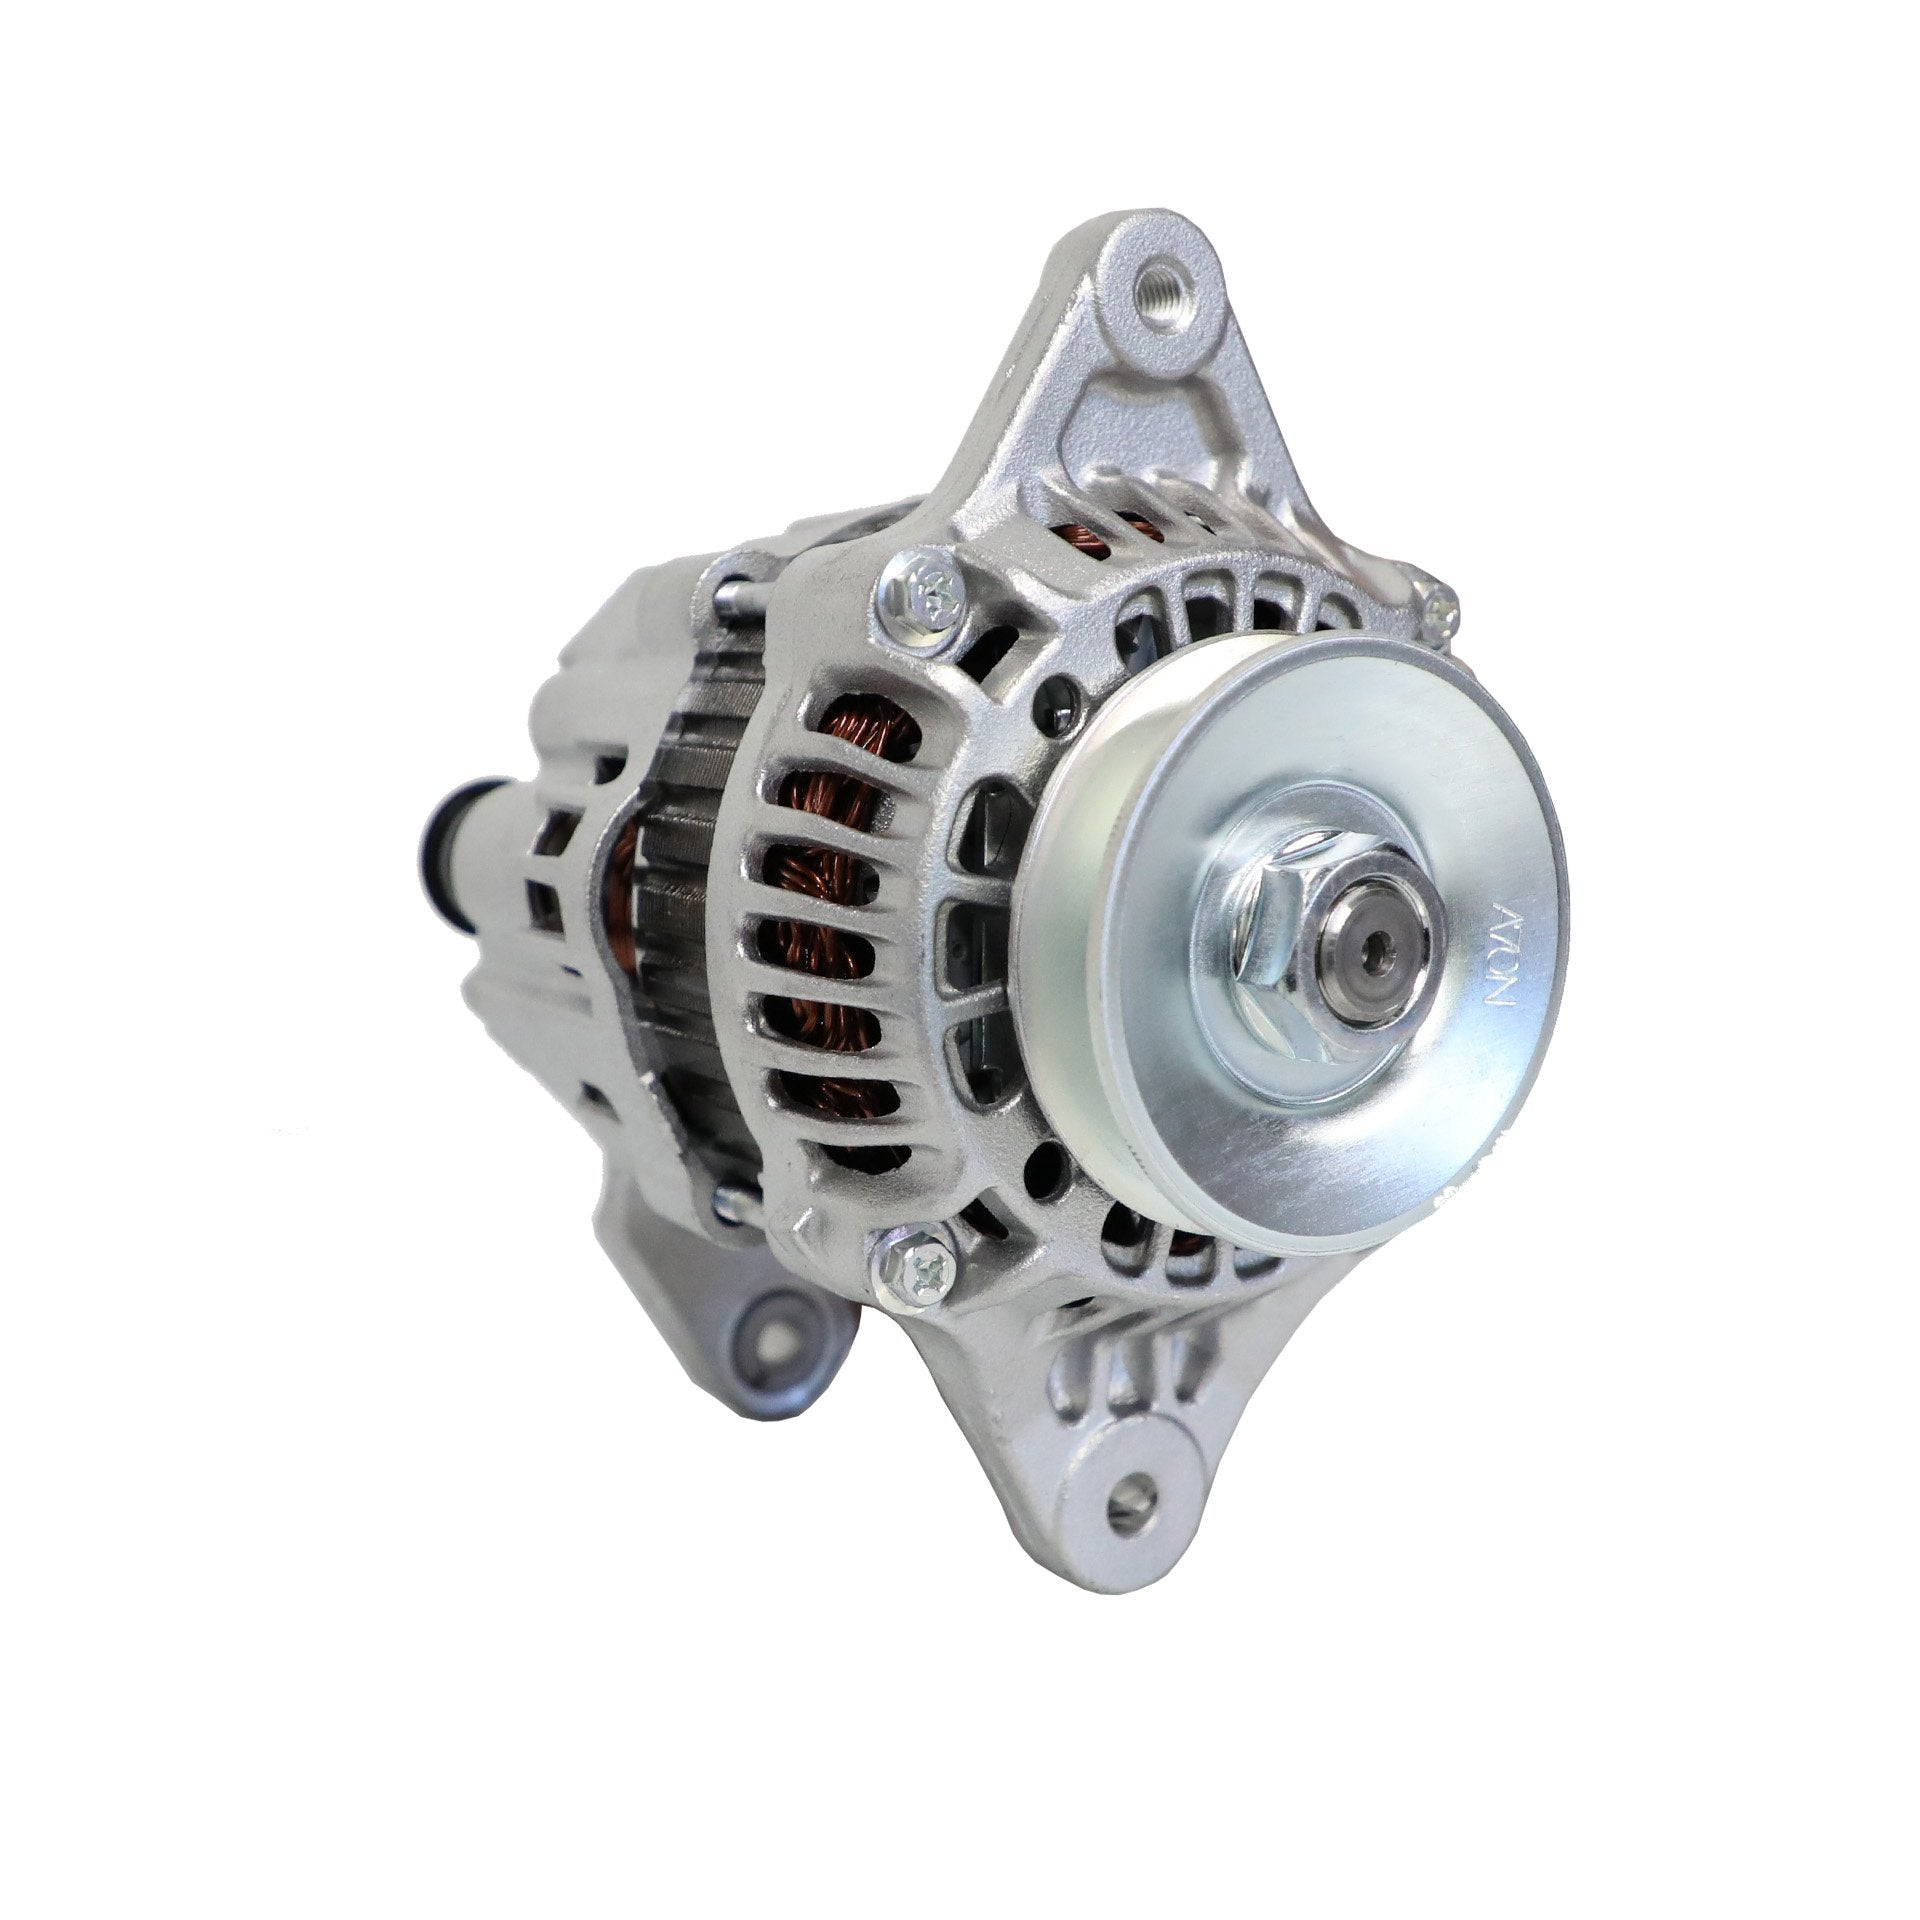 Forklift Part -  New 50 Amps Alternator SKU: 2G301-6NF01